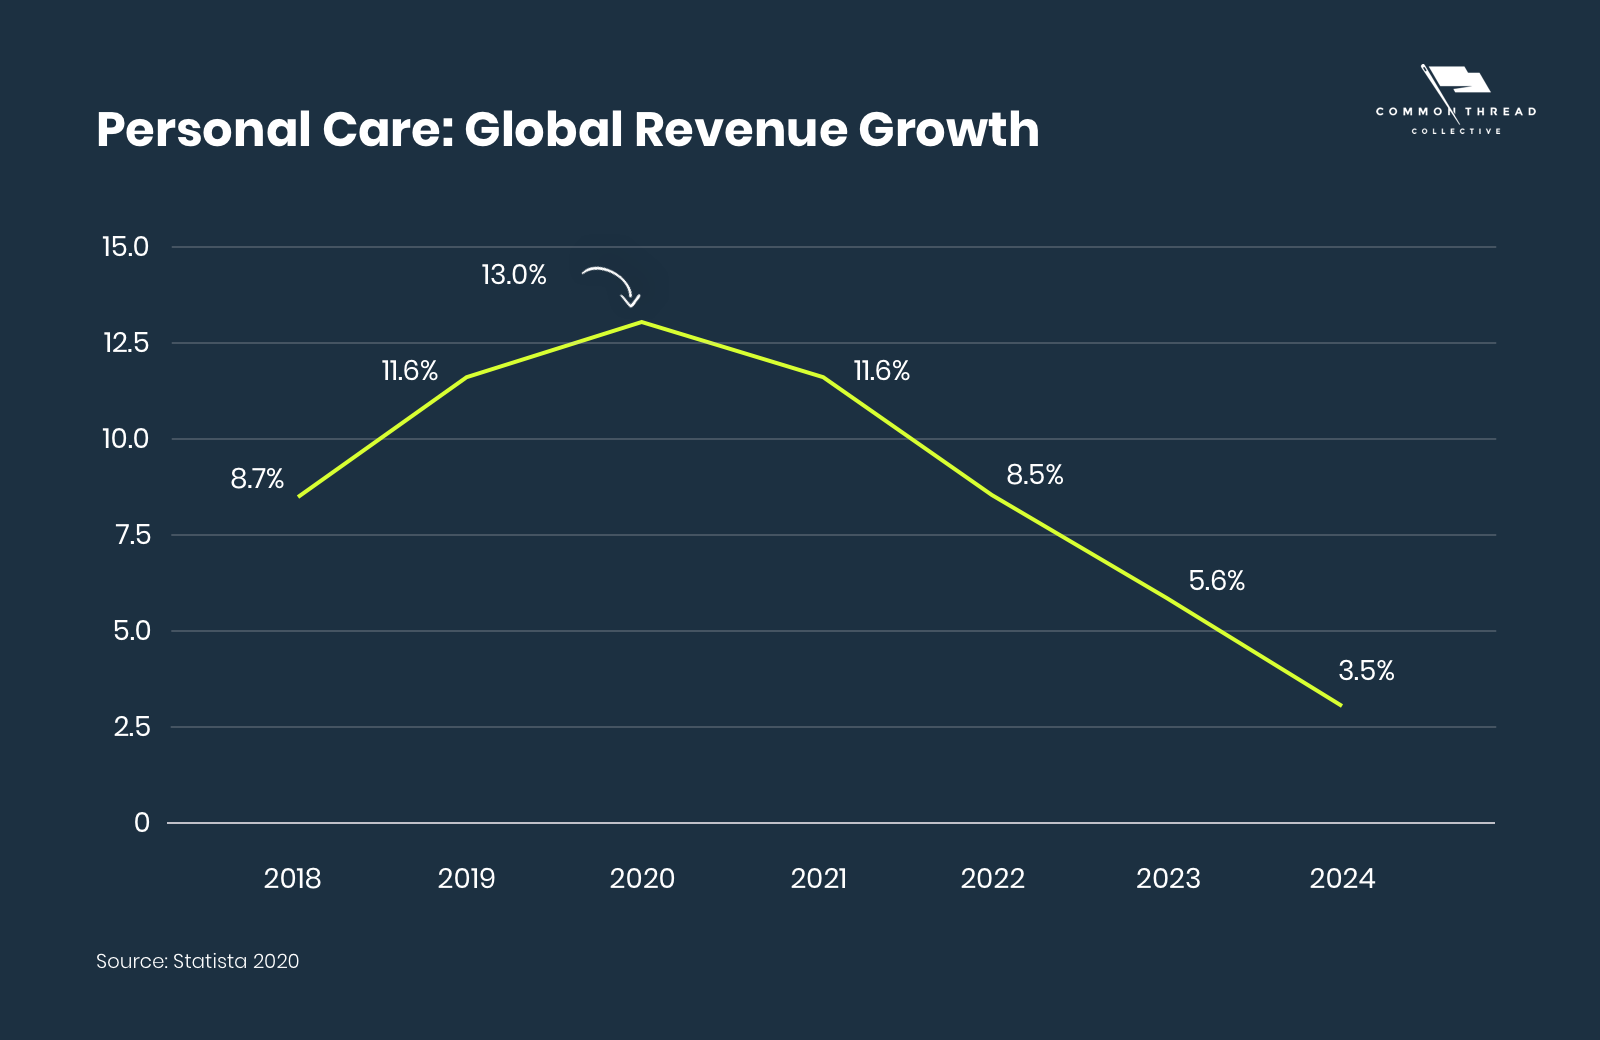 Personal Care Global Revenue Growth